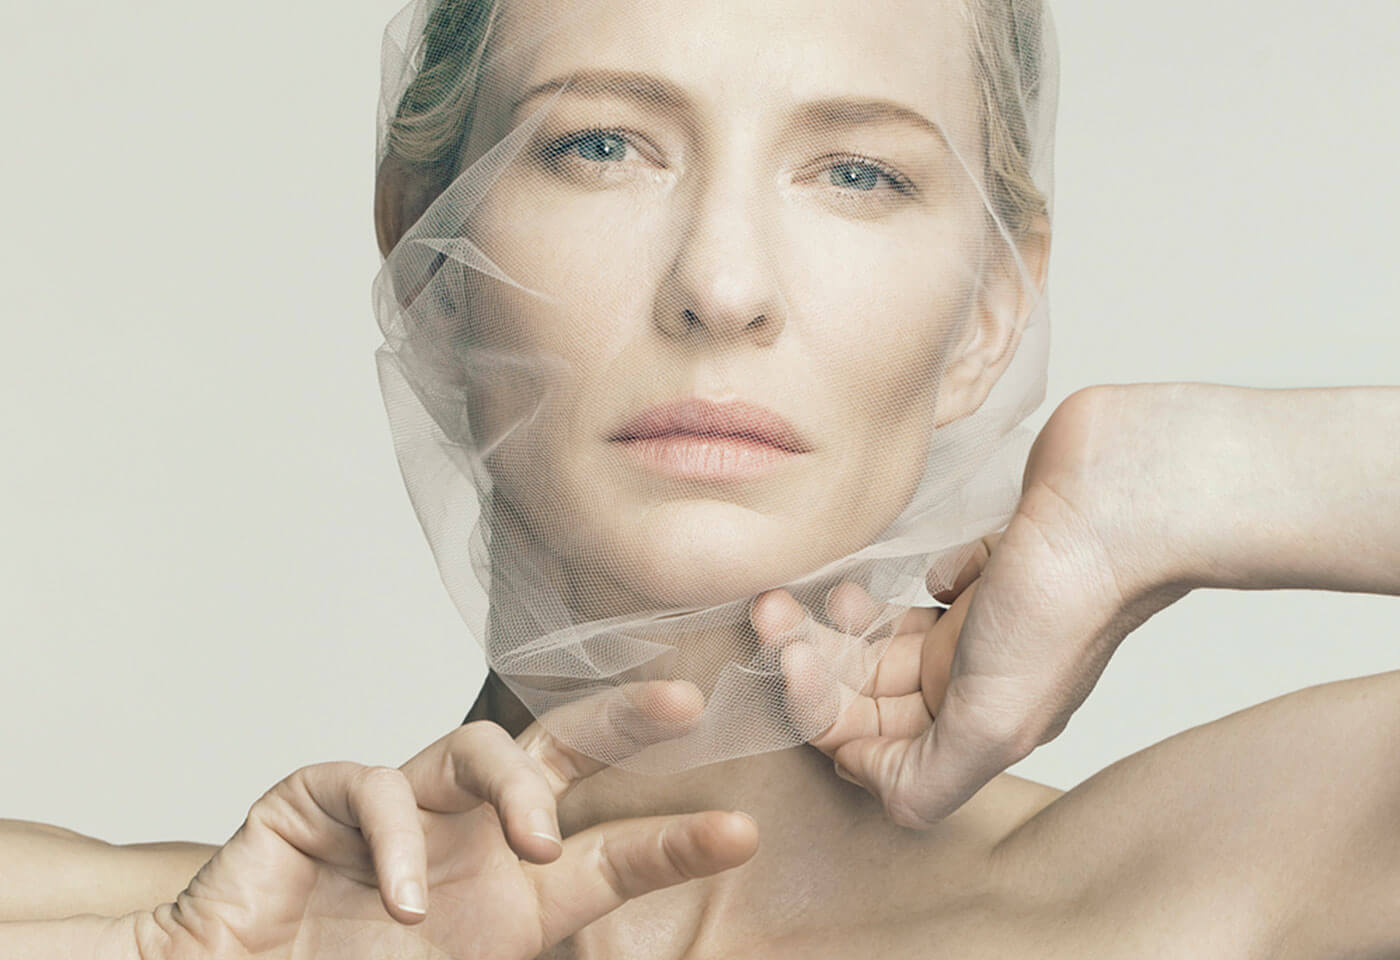 Portrait of Cate Blanchett by Michele Aboud